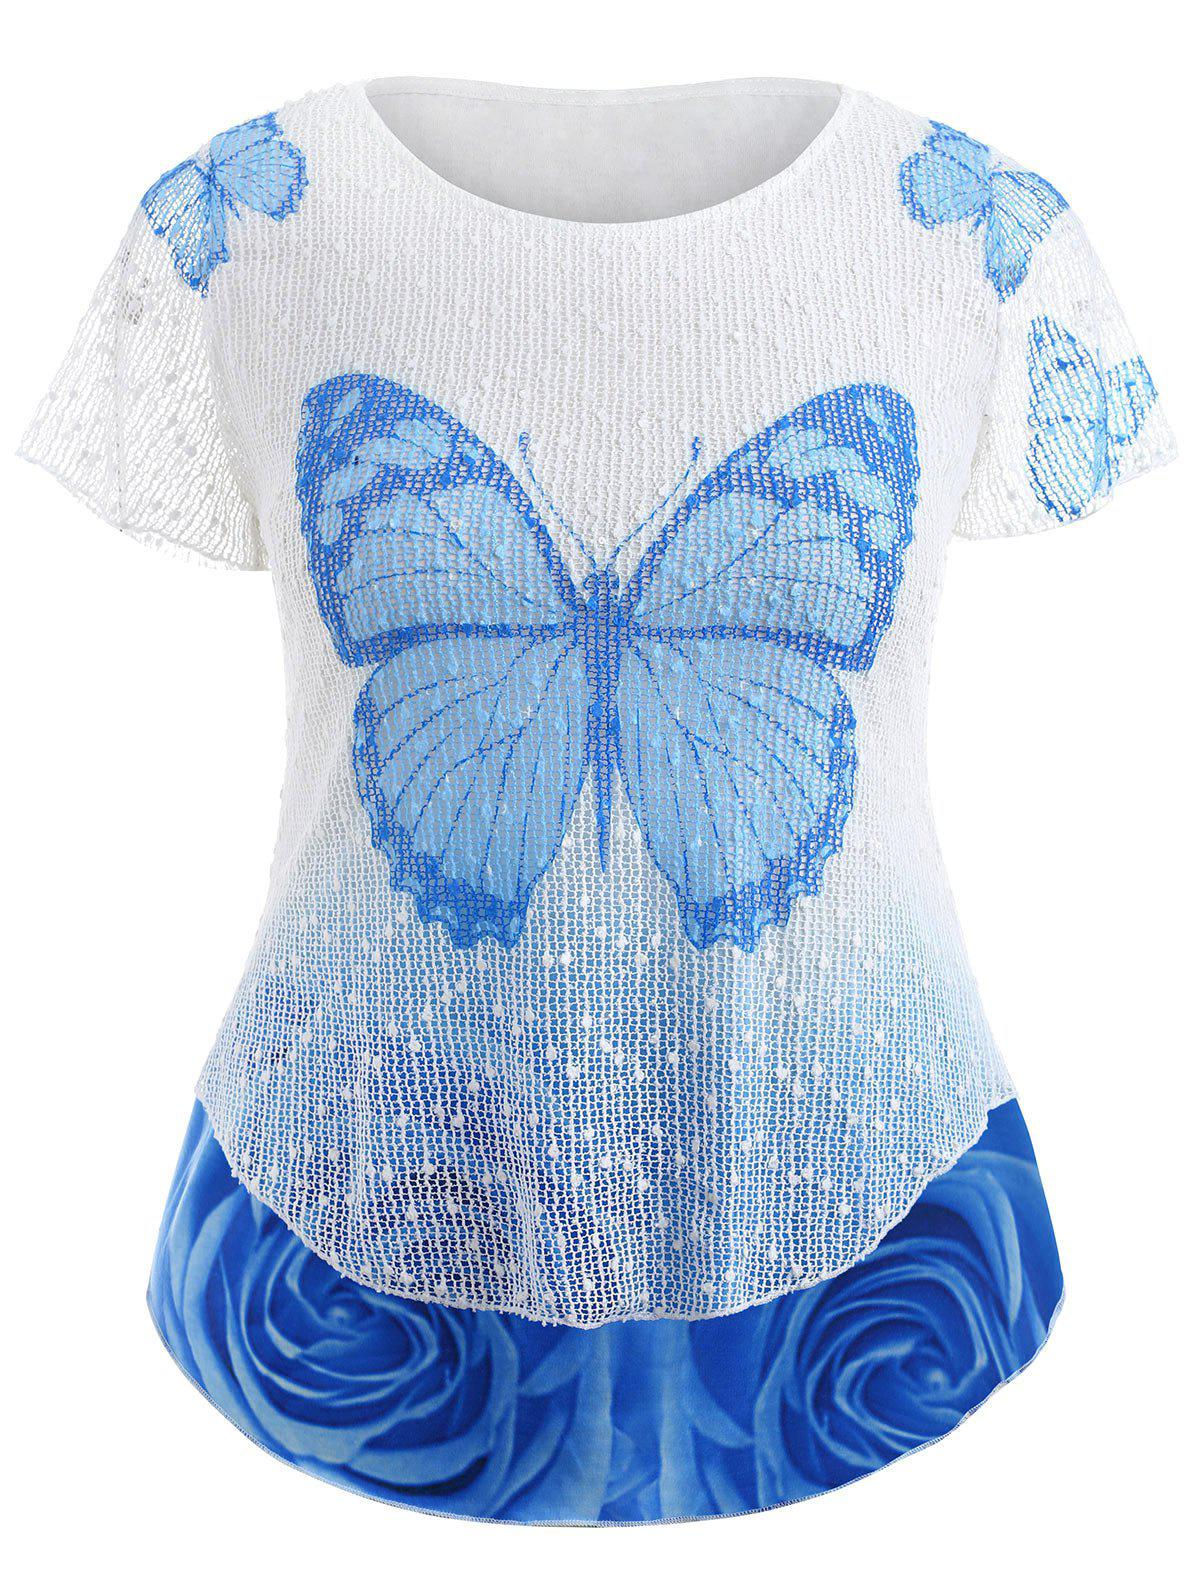 Butterfly Rose Plus Size Top - SKY BLUE L